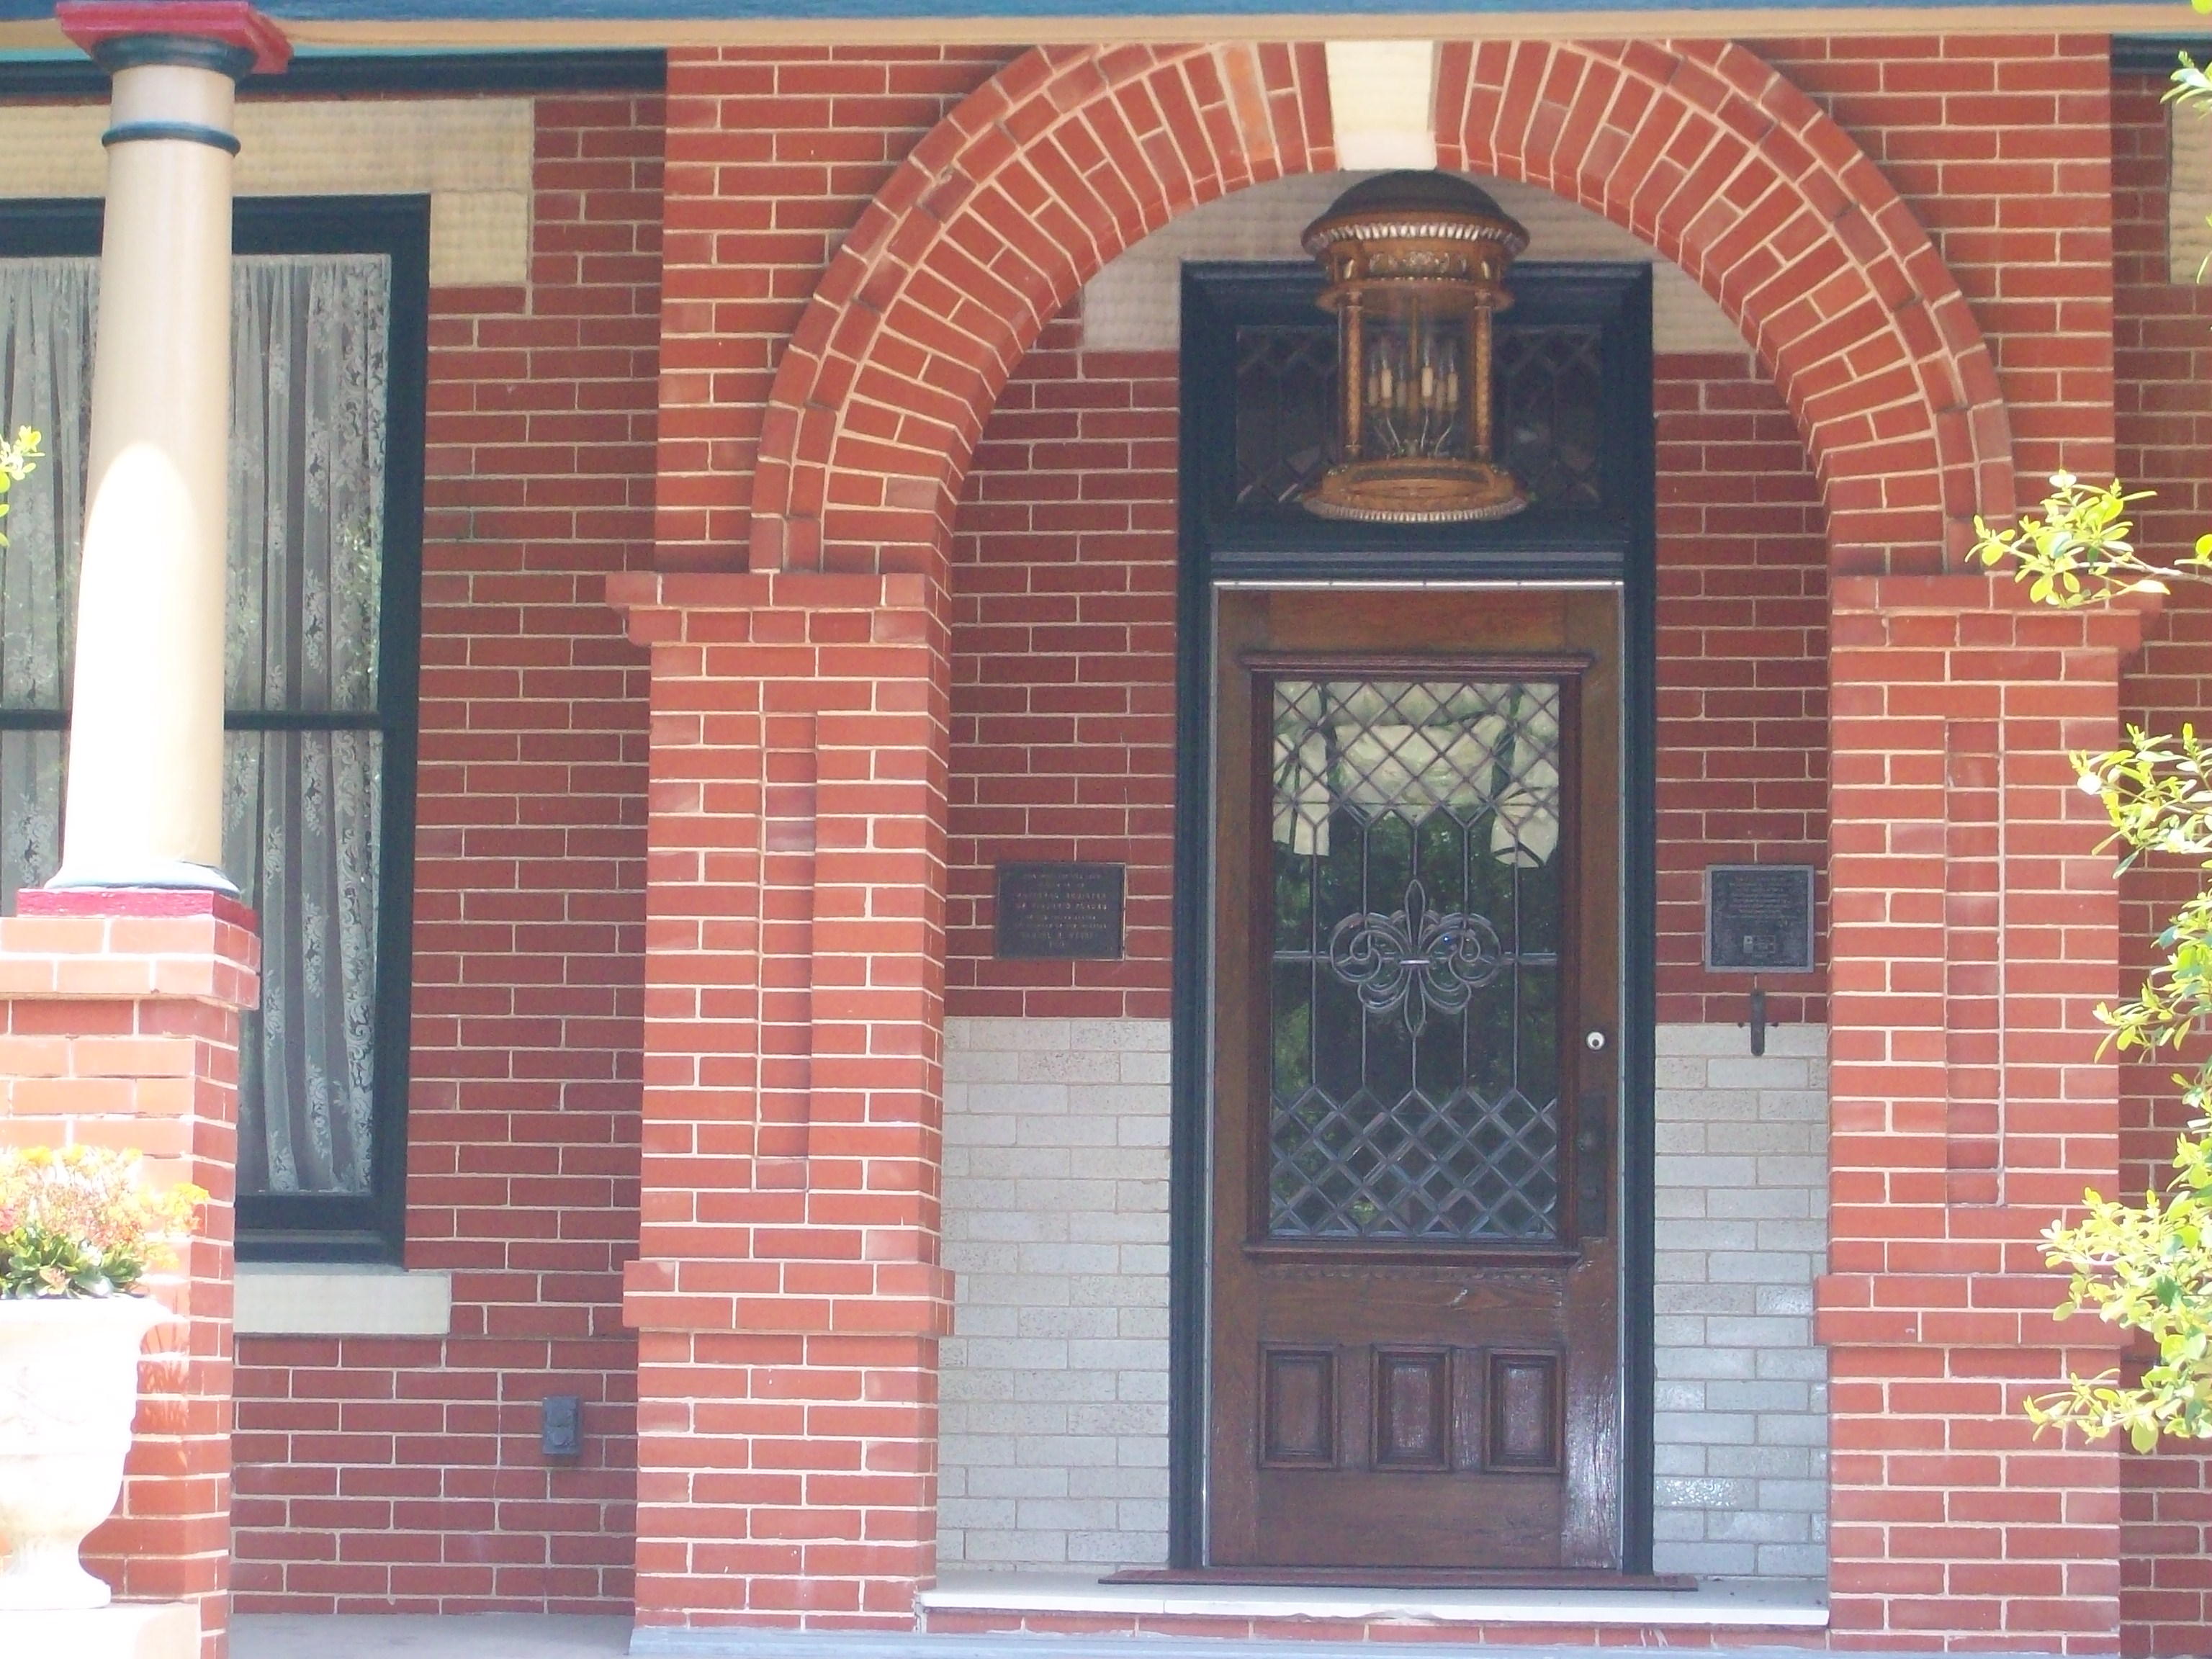 File:Webber House front door (Houston, Texas).JPG - Wikimedia Commons